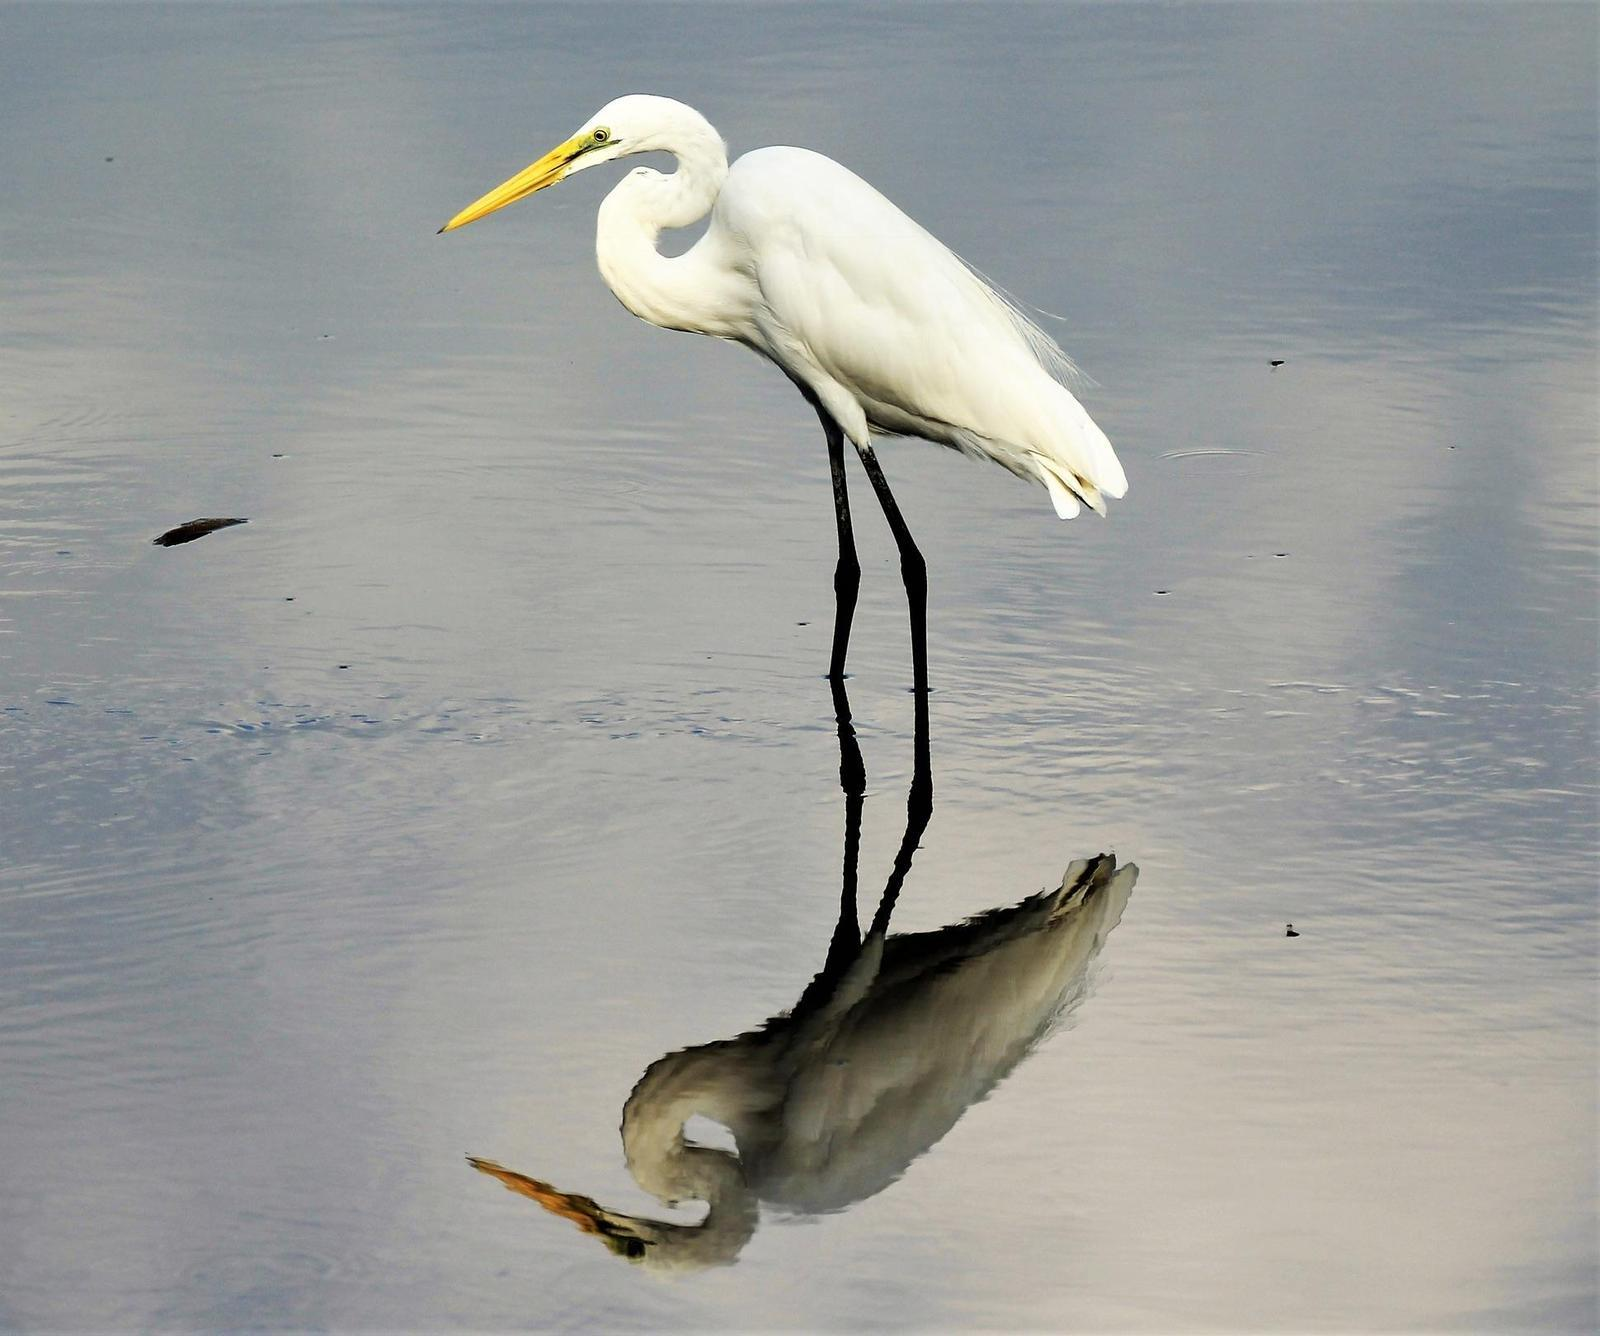 Great Egret Photo by Steven Cheong